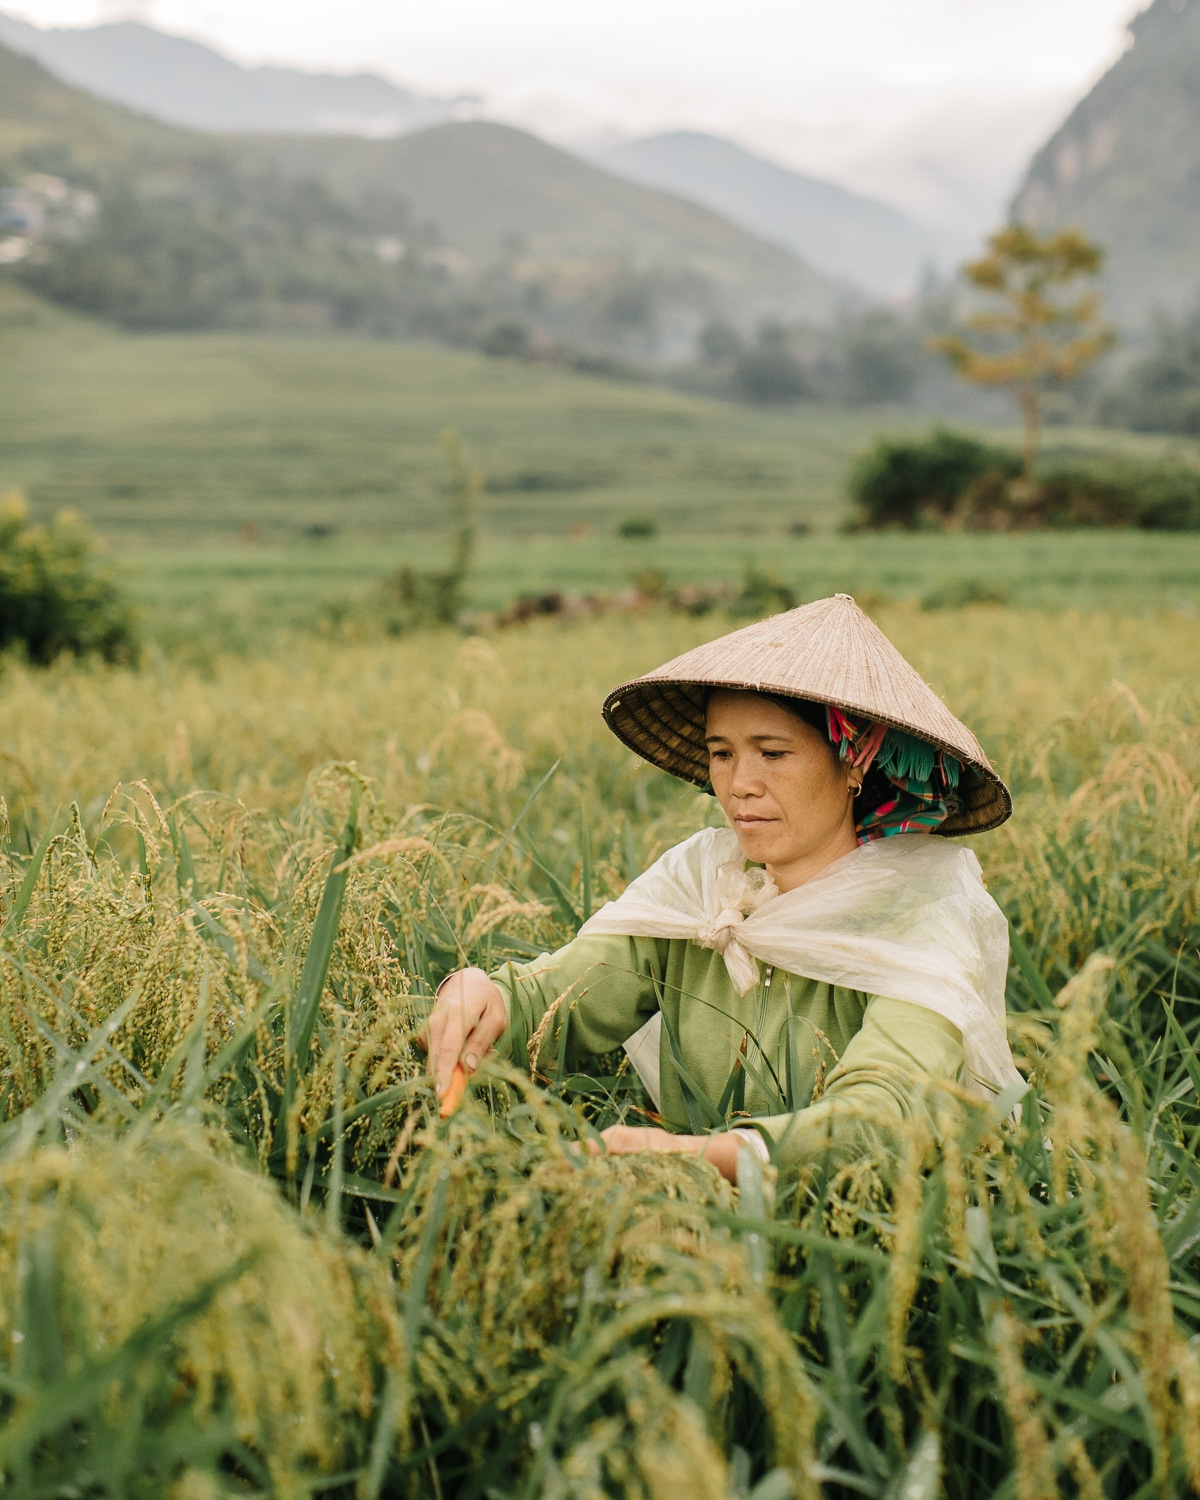 Harvesting sticky rice near Tu Le town in Vietnam